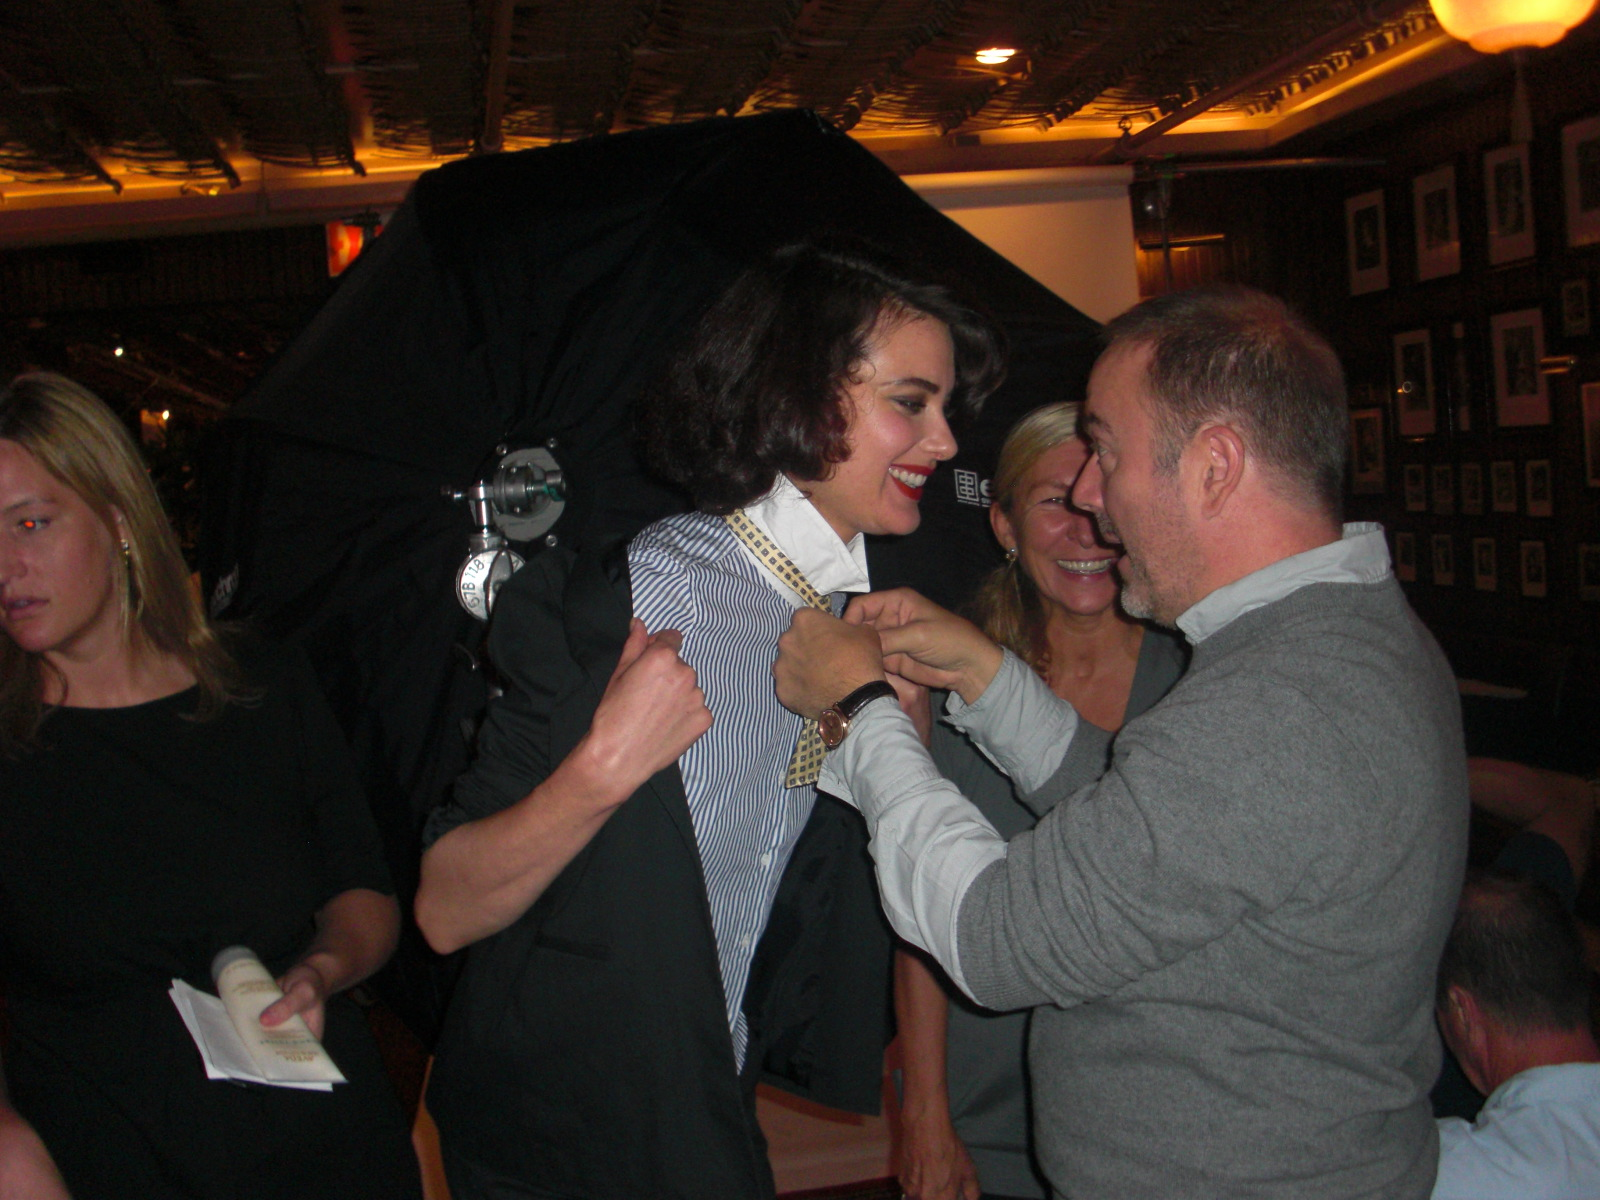 John Patrick gets supermodel Shalom Harlow ready to act as bartender for the event